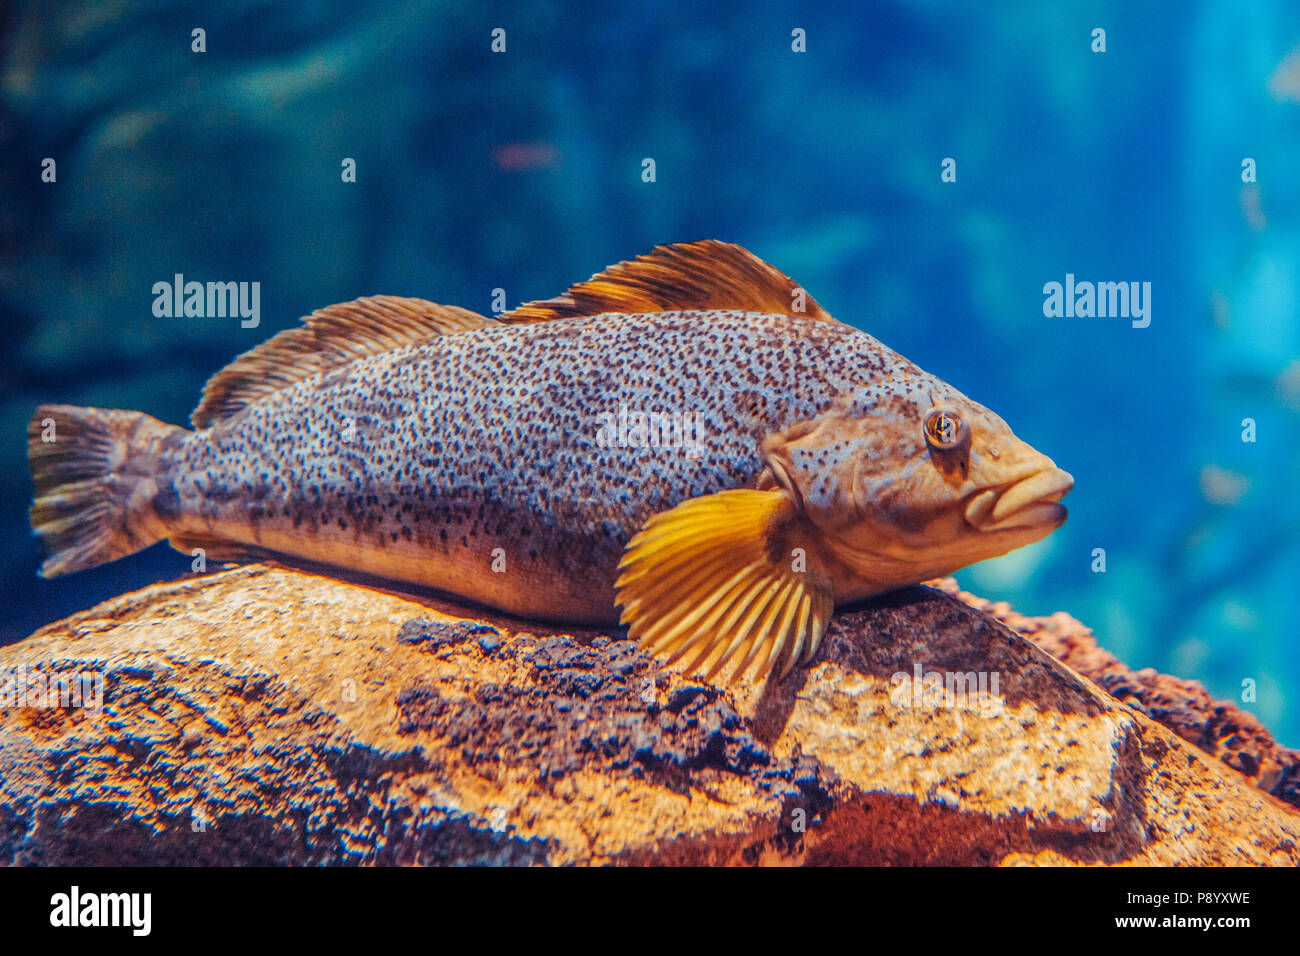 One red yellow large fish in blue water, colorful underwater world, copyspace for text, background wallpaper - Stock Image